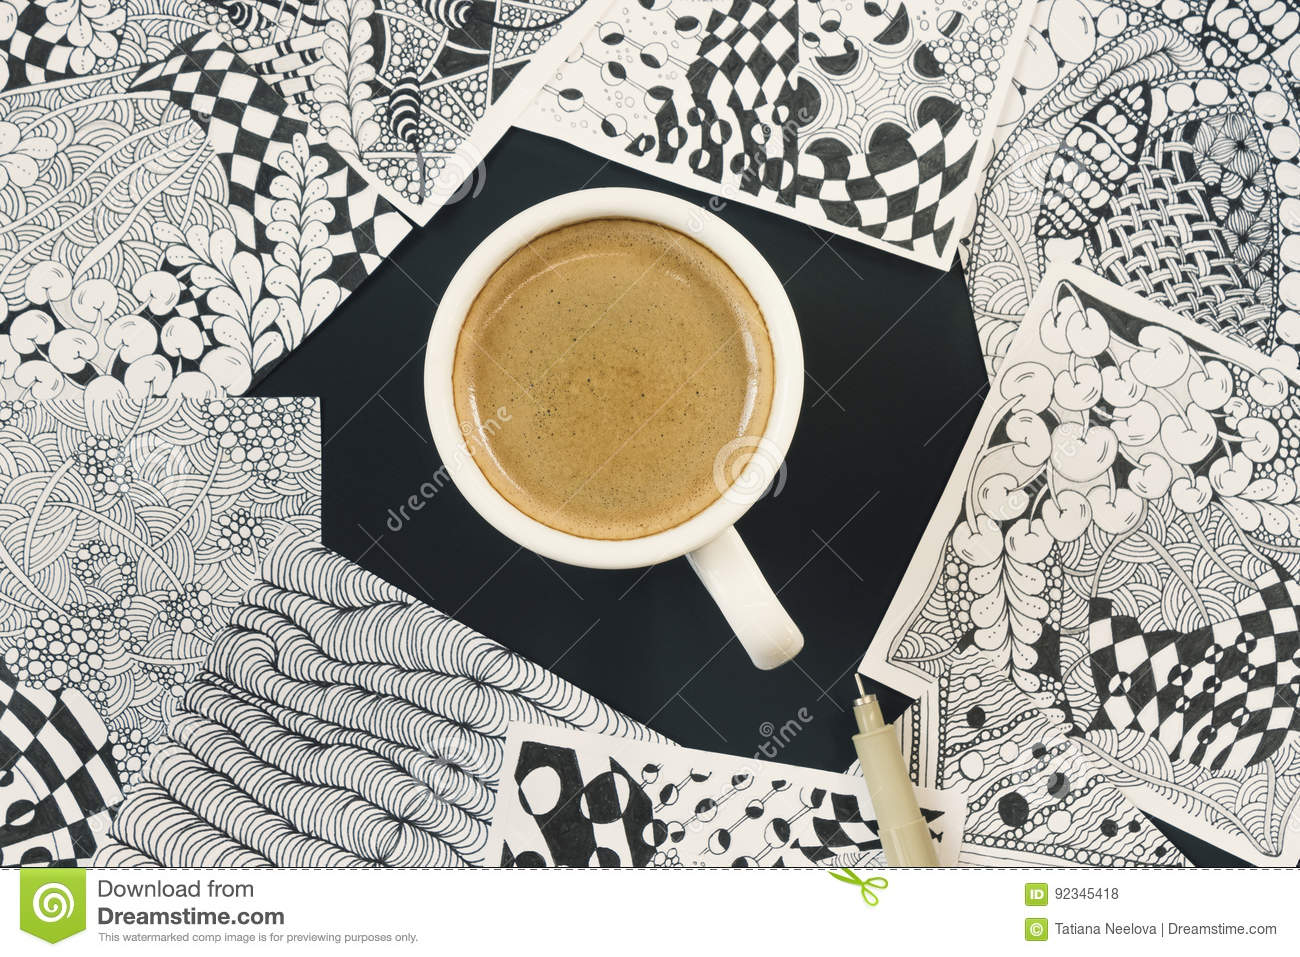 Doodle zen tangle illustration zen art doodle patterns for the beginners sketch illustrations a pencil and a cup of coffee on the dark wooden table